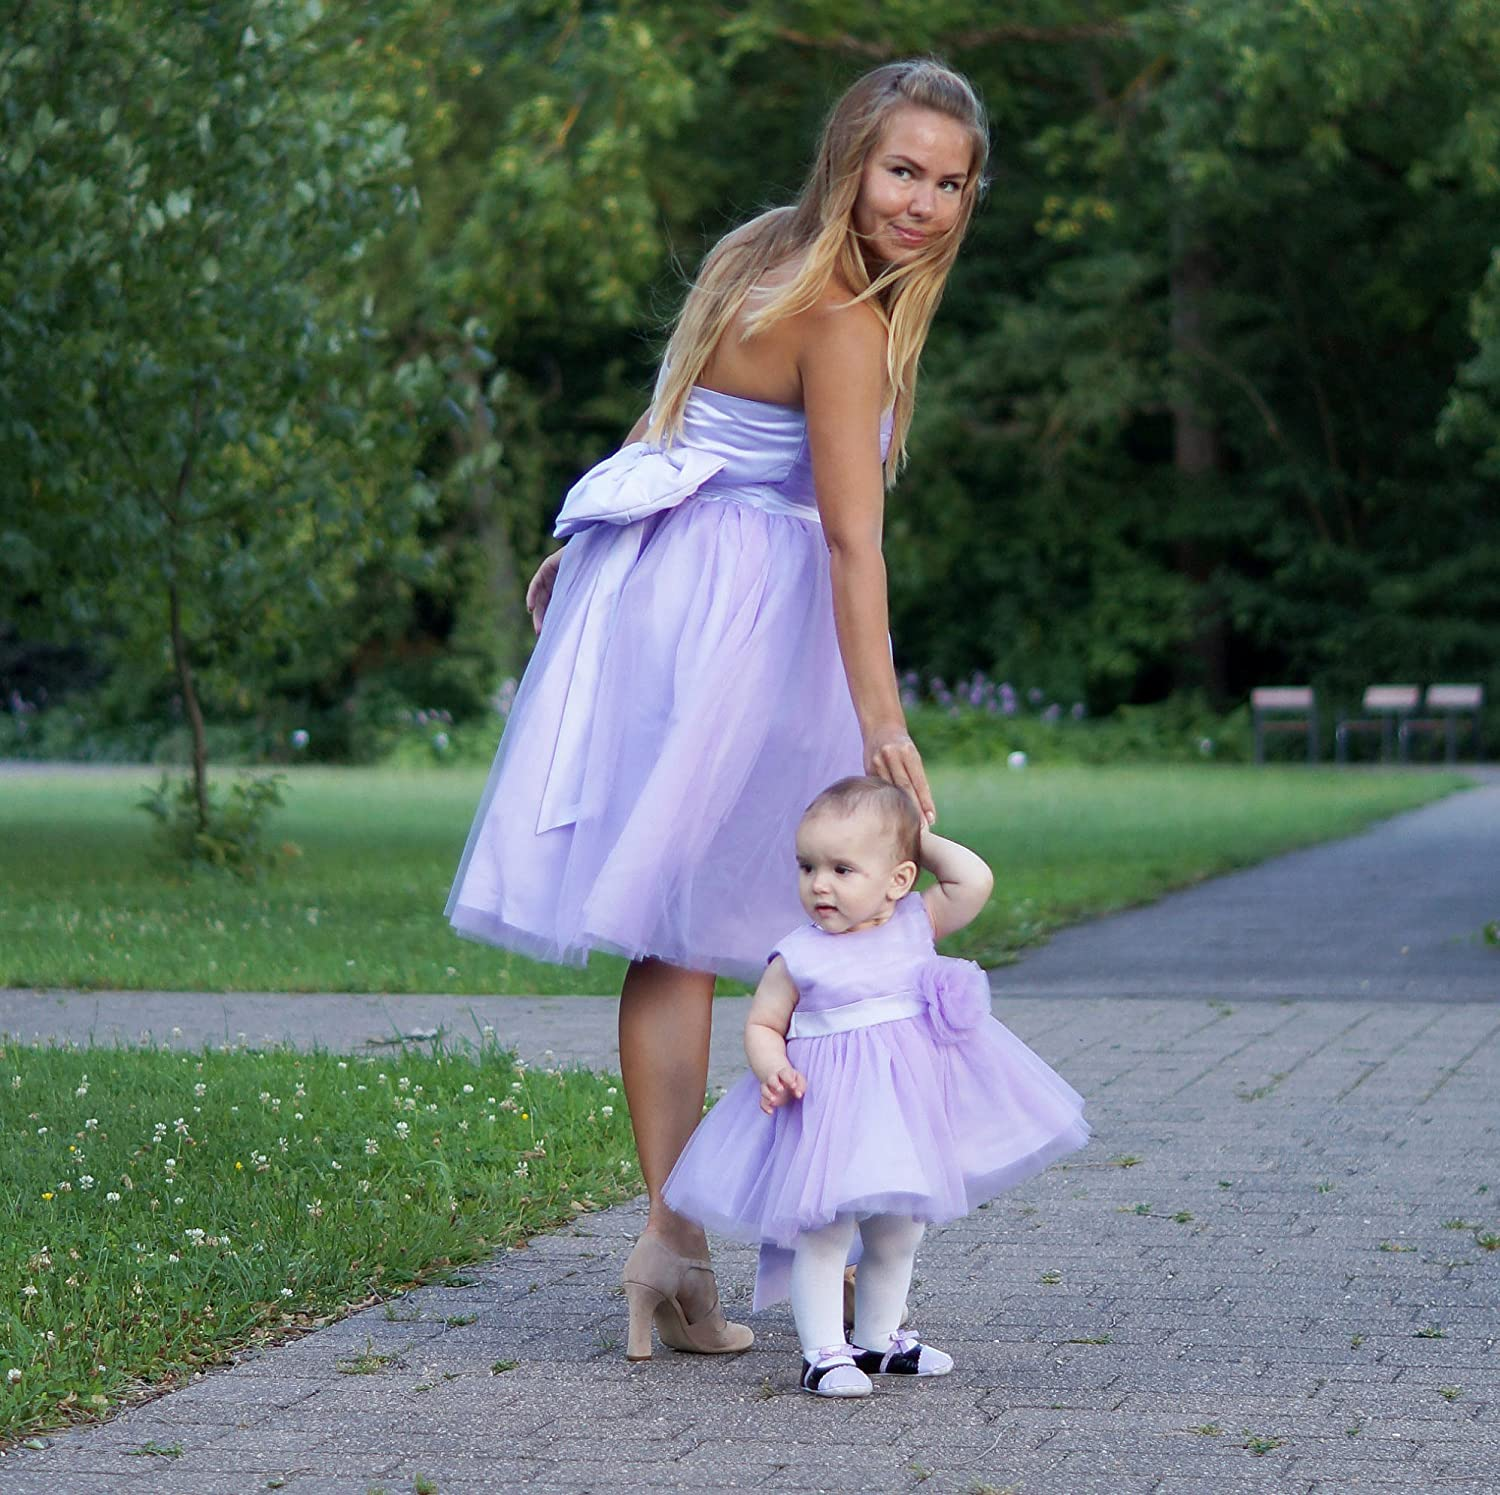 Amazon Com Mother Daughter Matching Dresses Purple Tutu Dresses Tulle Dresses For Mother Daughter Mommy And Me Dress Outfits With Bow Birthday Wedding Handmade,Boat Neck Satin Wedding Dress